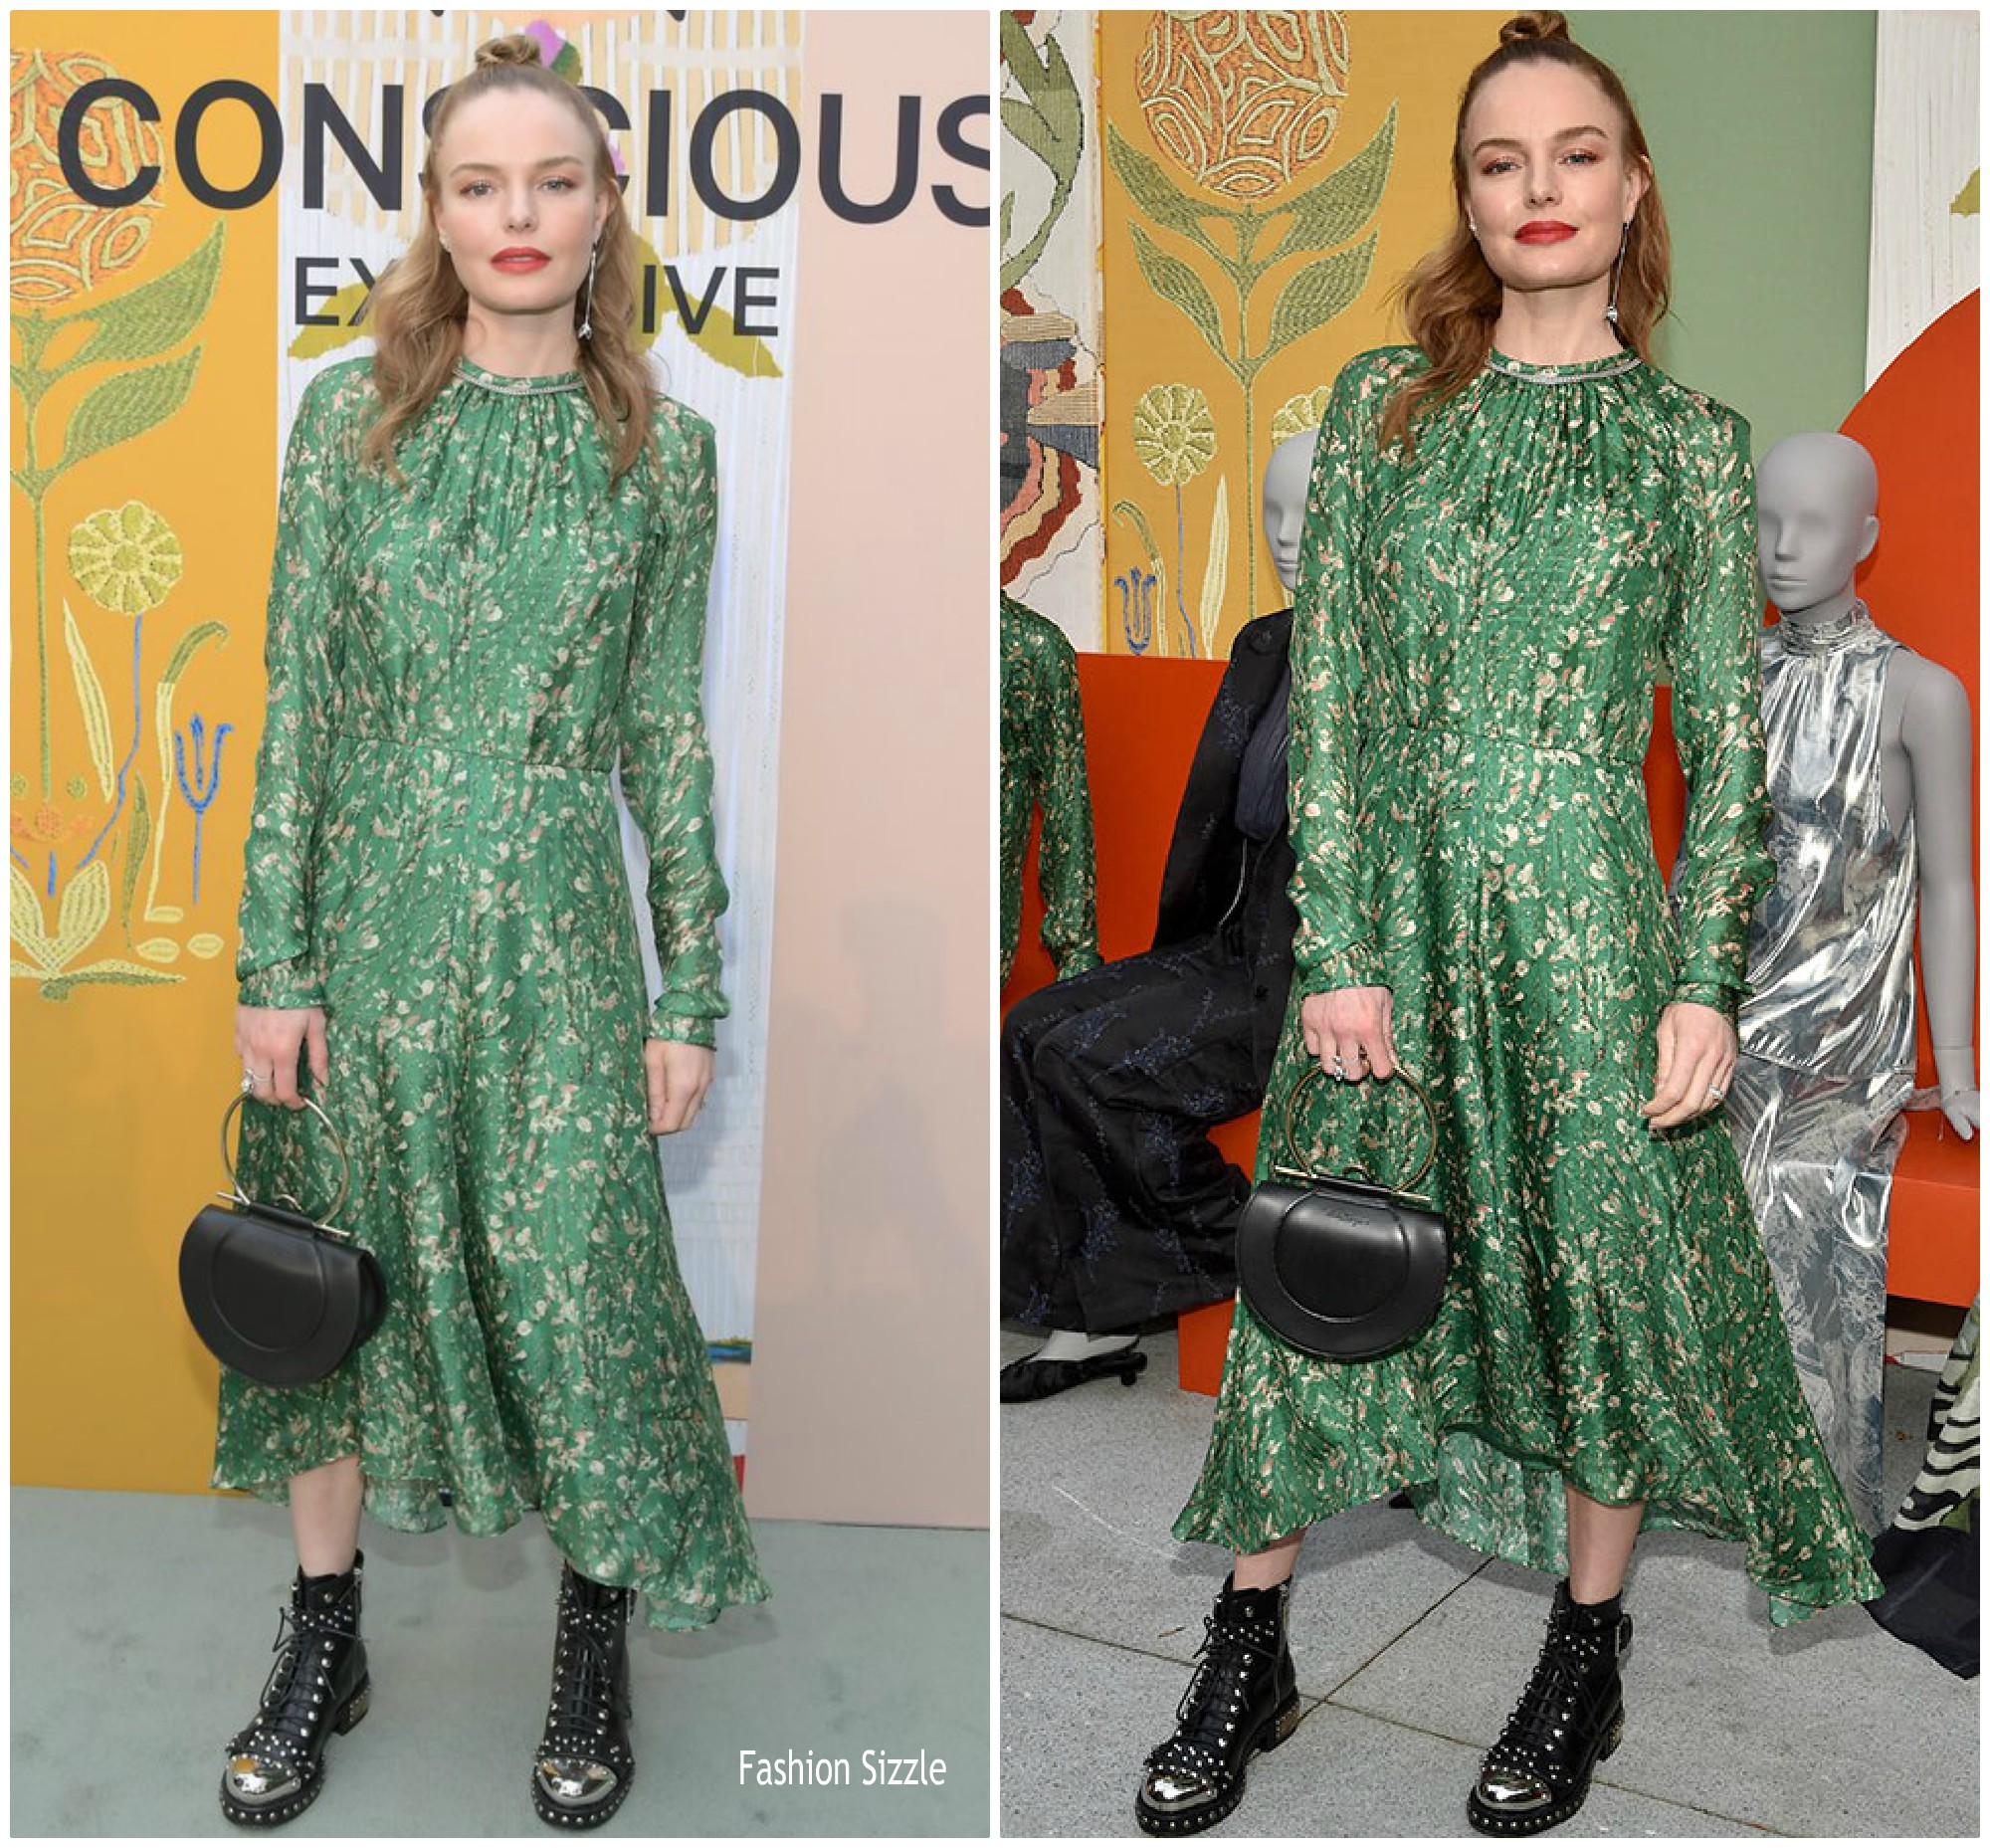 kate-bosworth-in-hm-conscious-exclusive-hm-2018-conscious-exclusive-collection-launch